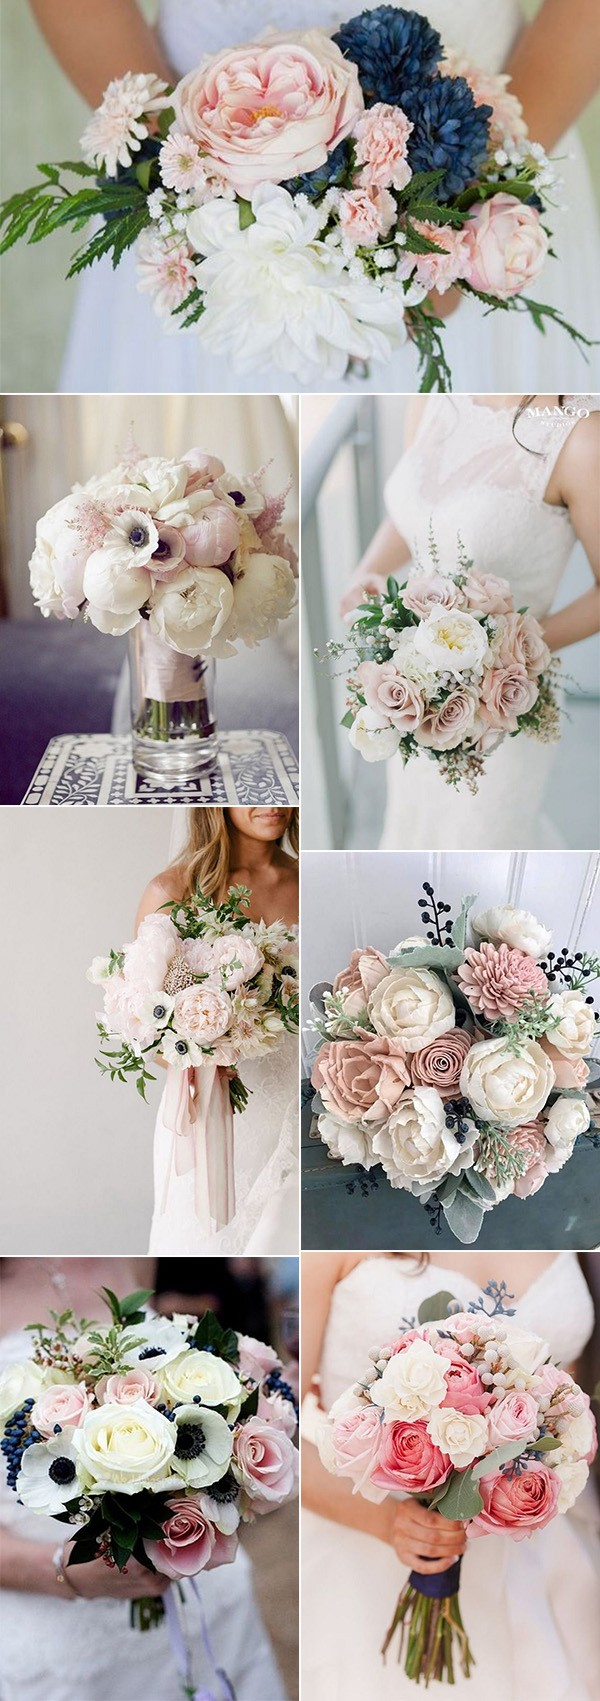 15 Adorable Navy Blue And Blush Pink Wedding Bouquets Page 2 Of 2